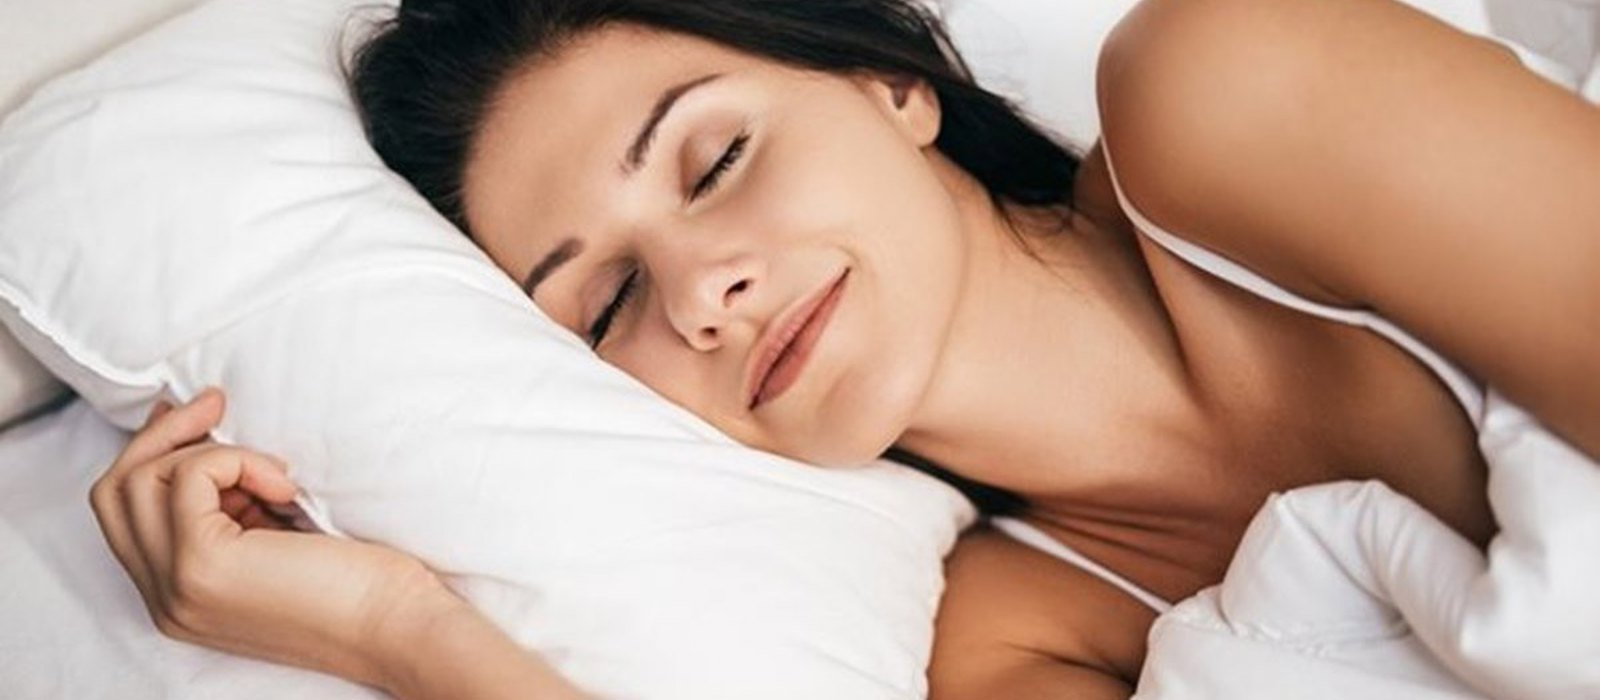 Wellbeing - How is your sleep?  Here's our TOP TIPS